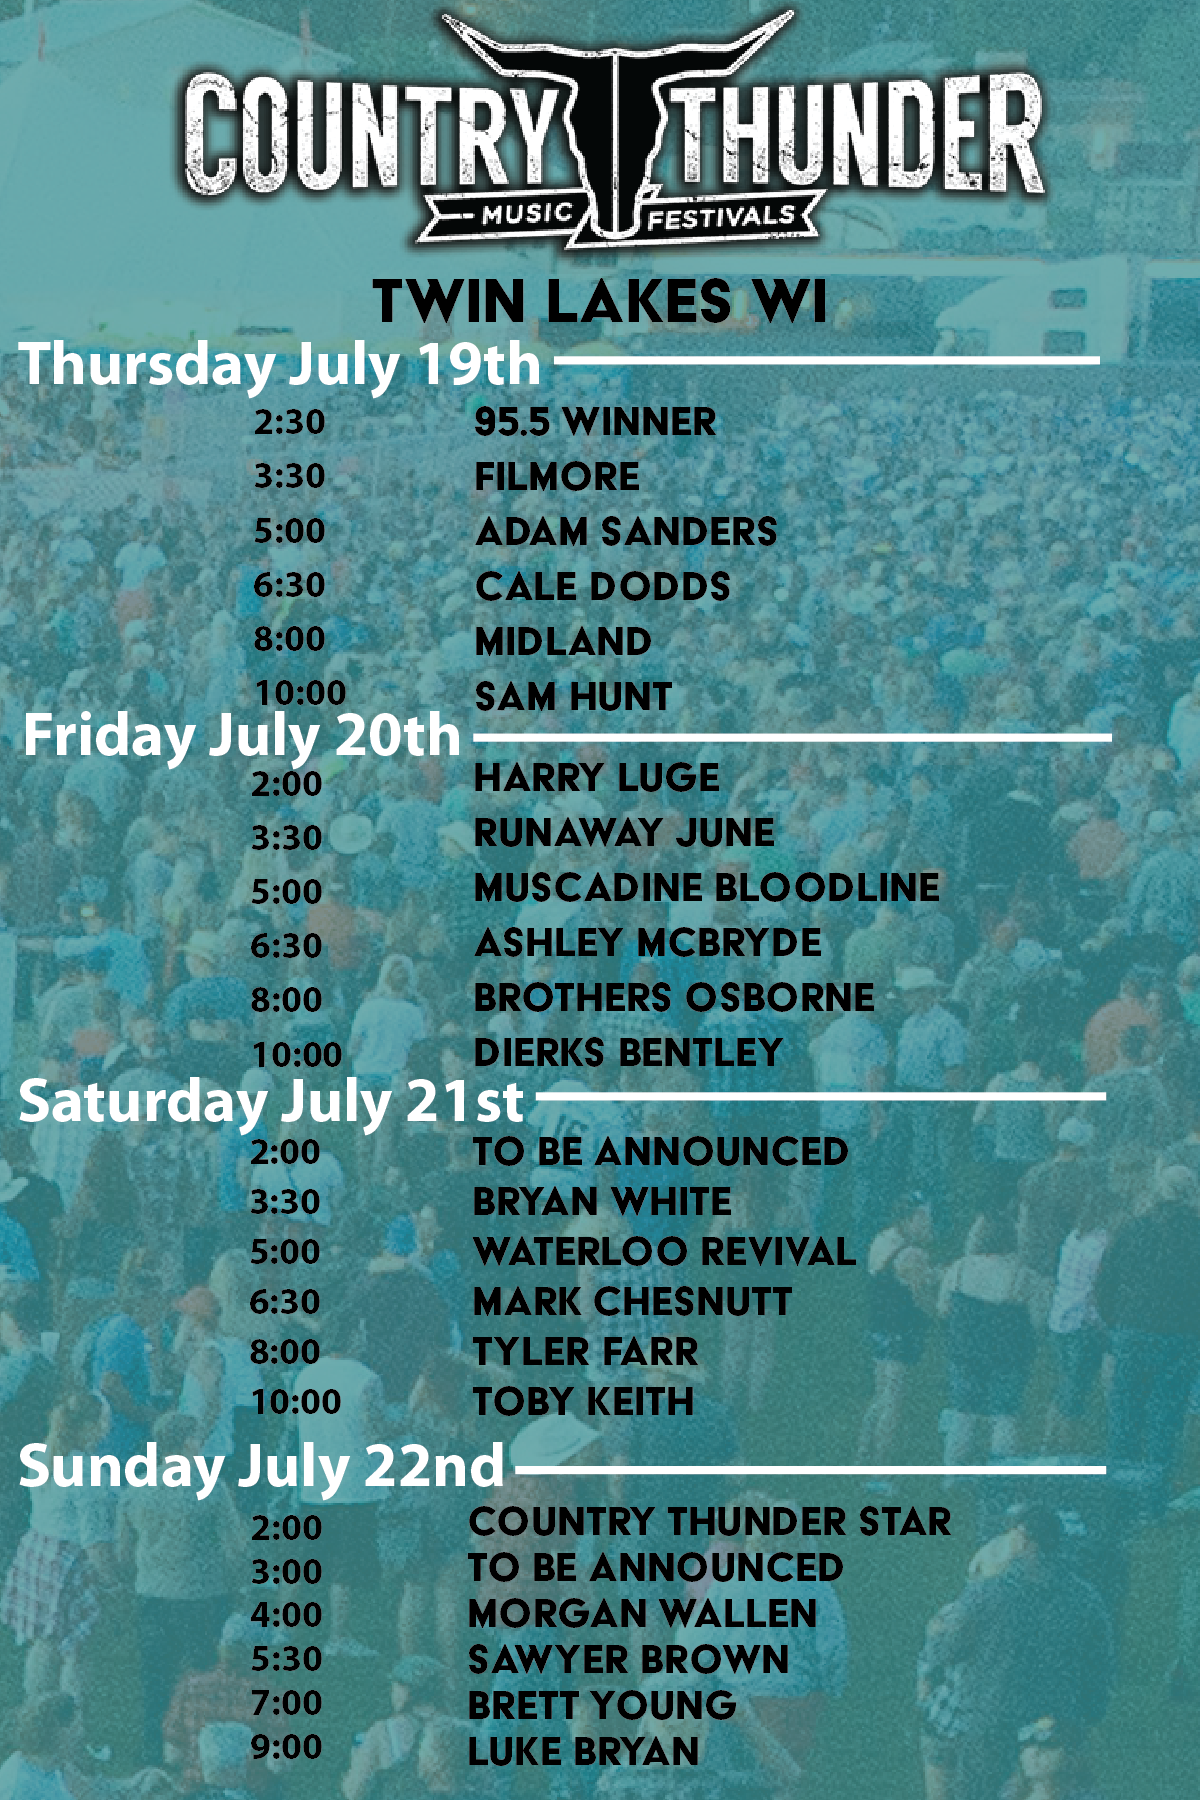 Country Thunder Wisconsin Twin Lakes Wi Past Lineups